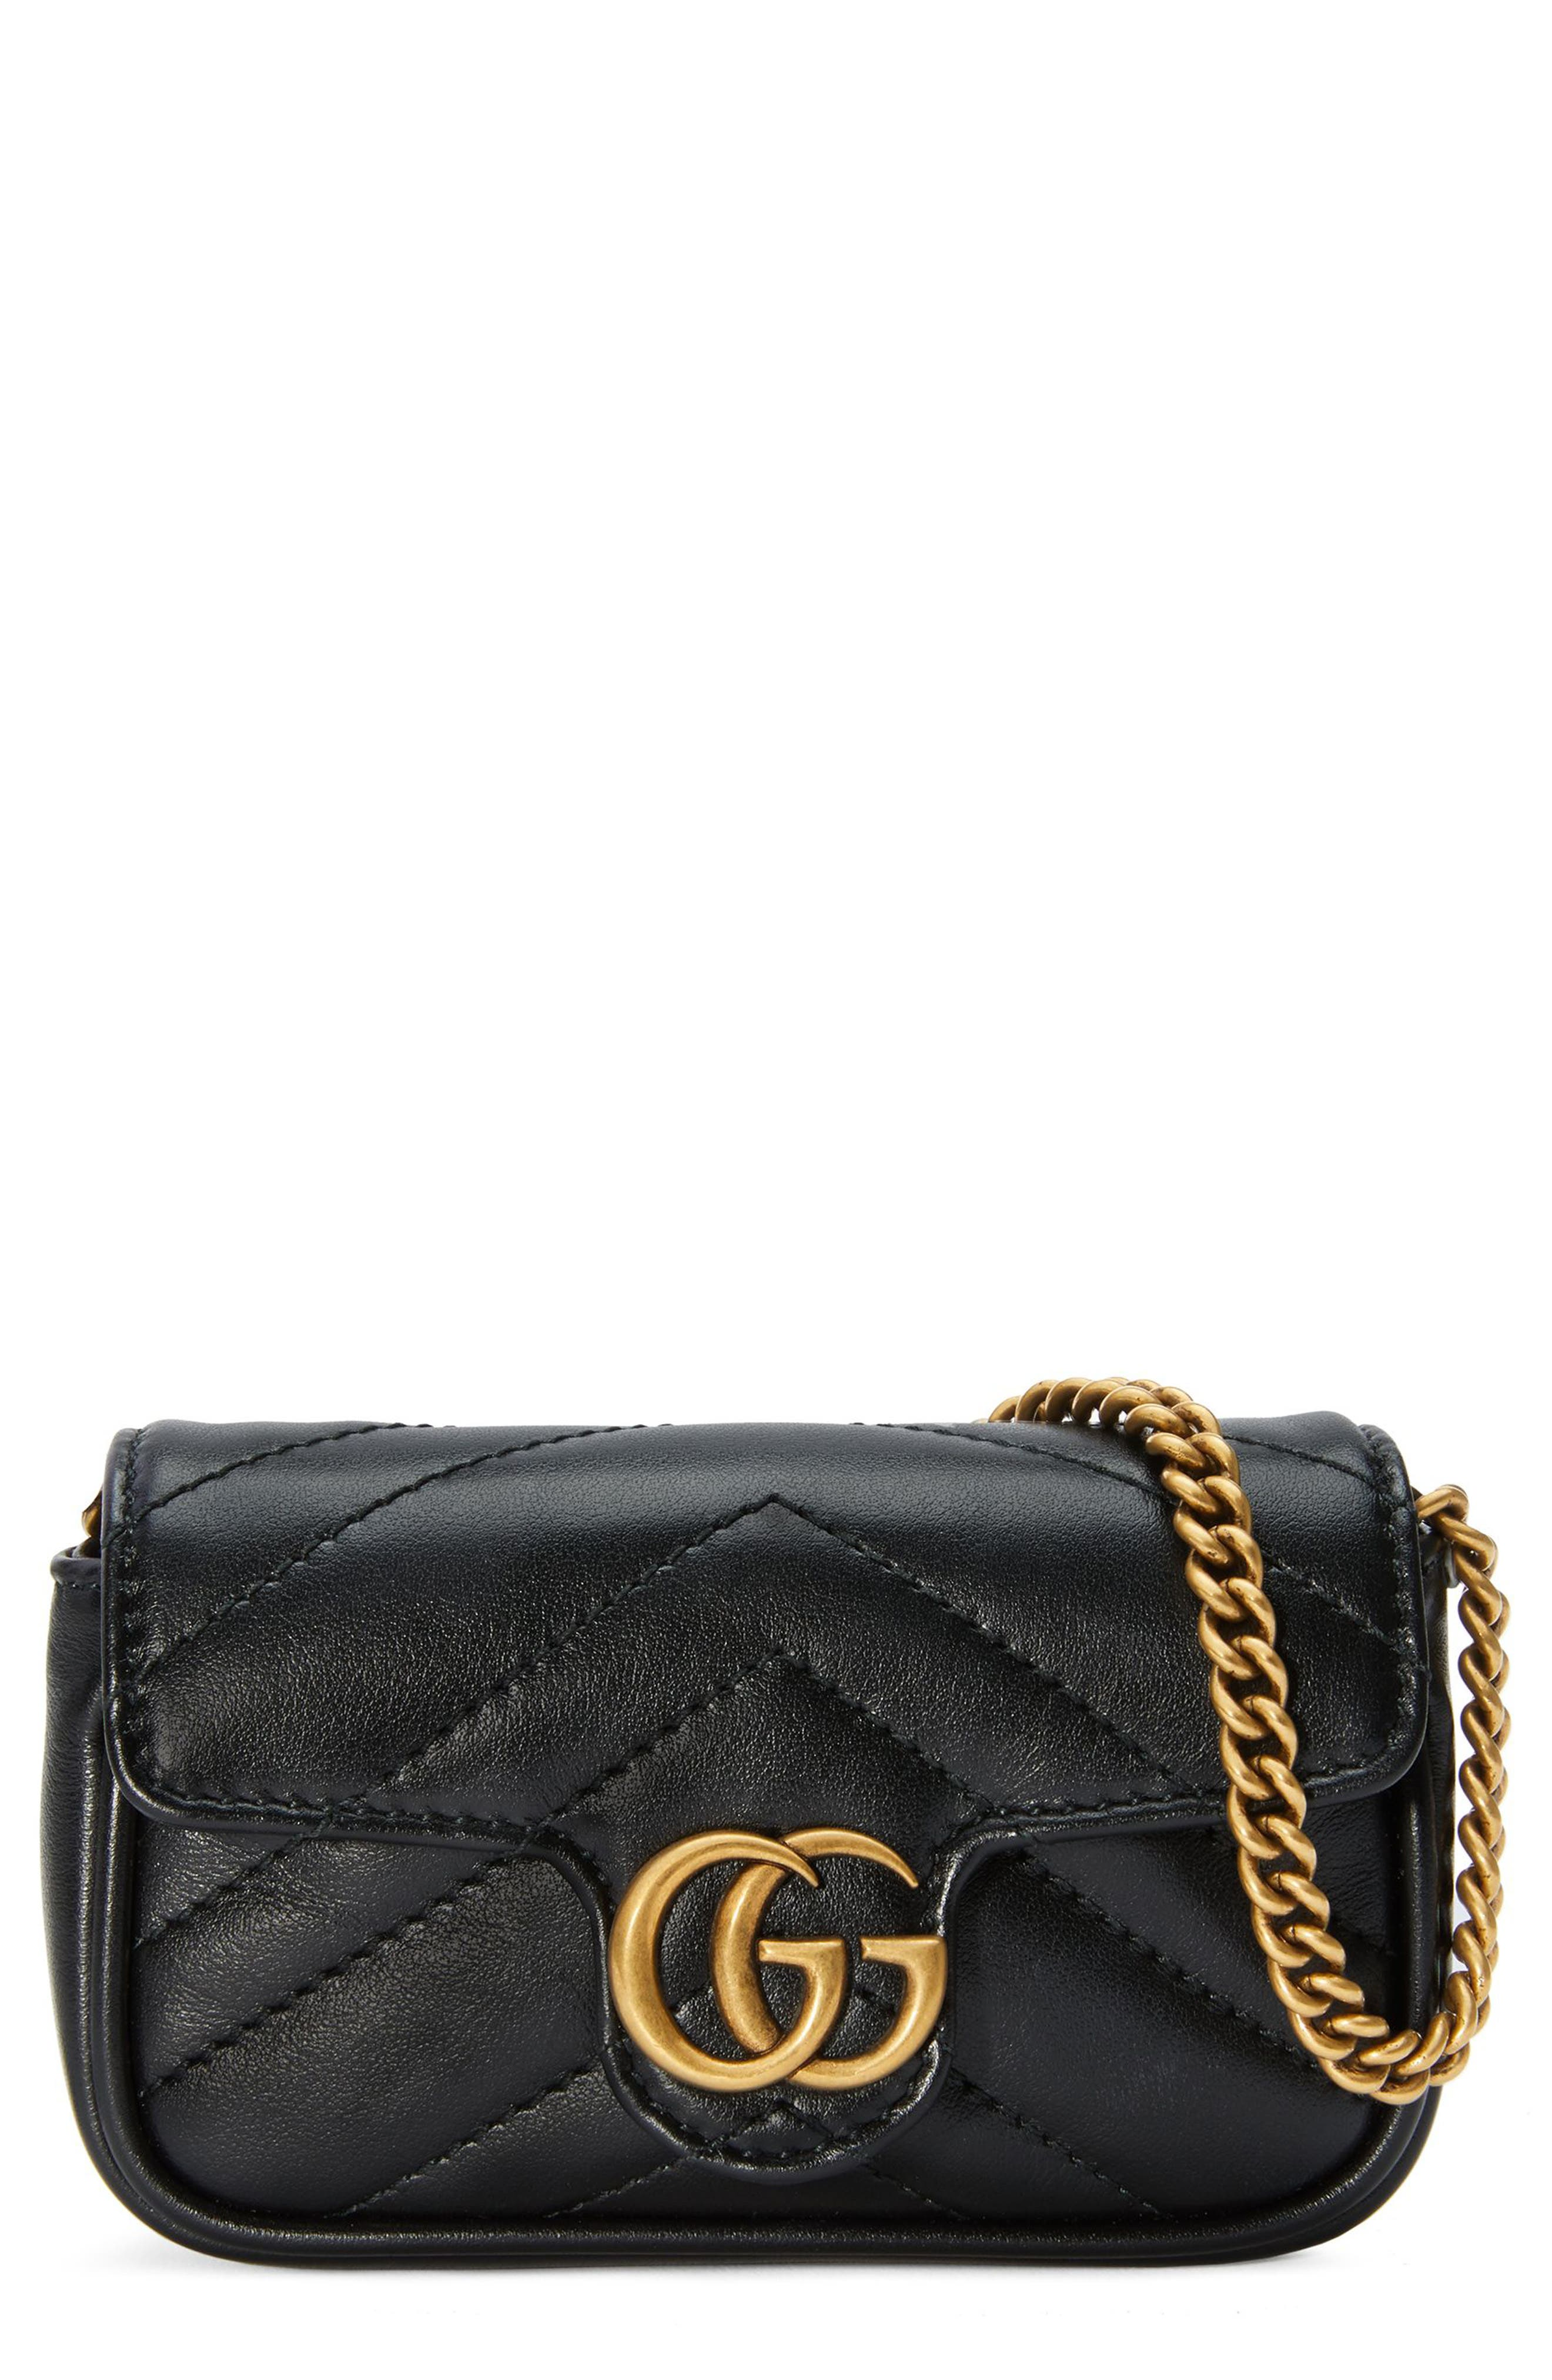 GG Marmont 2.0 Quilted Leather Coin Purse on a Chain